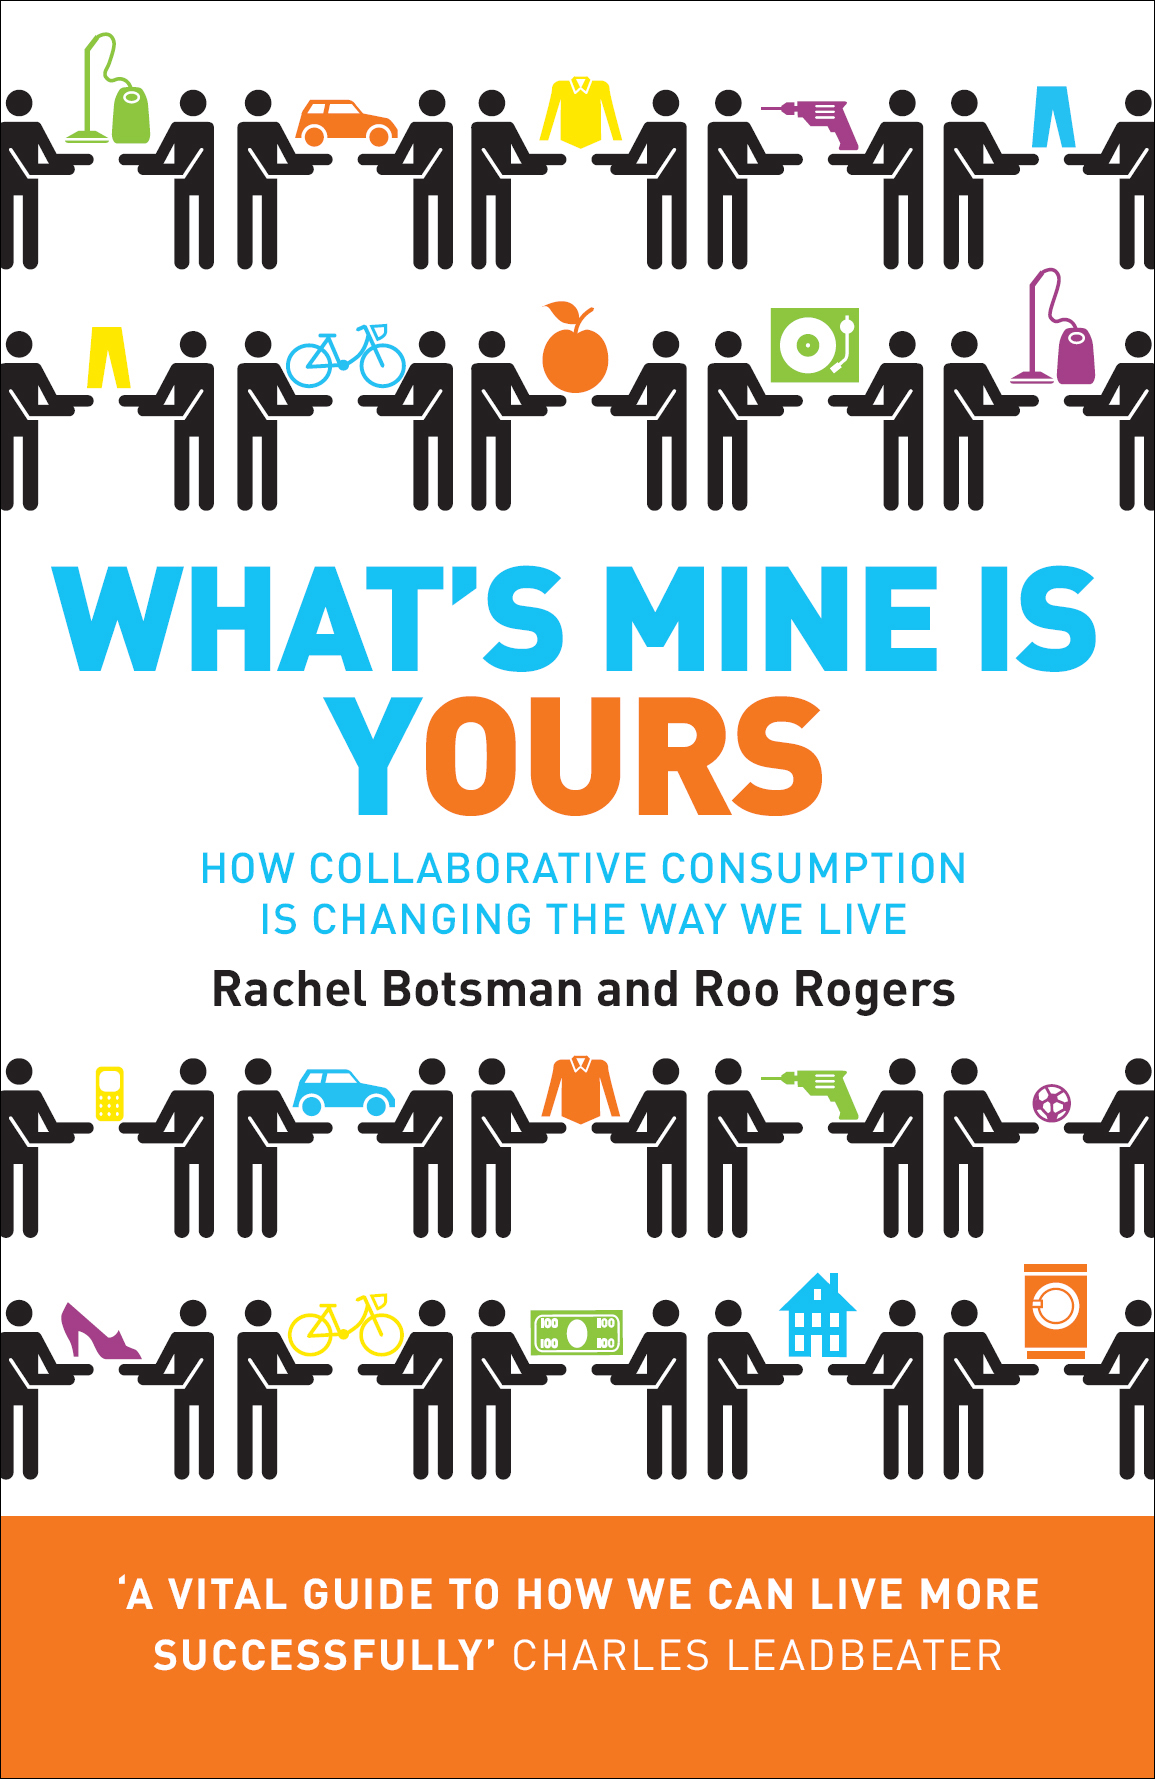 Rachel Botsman What's Mine Is Yours: How Collaborative Consumption is Changing the Way We Live